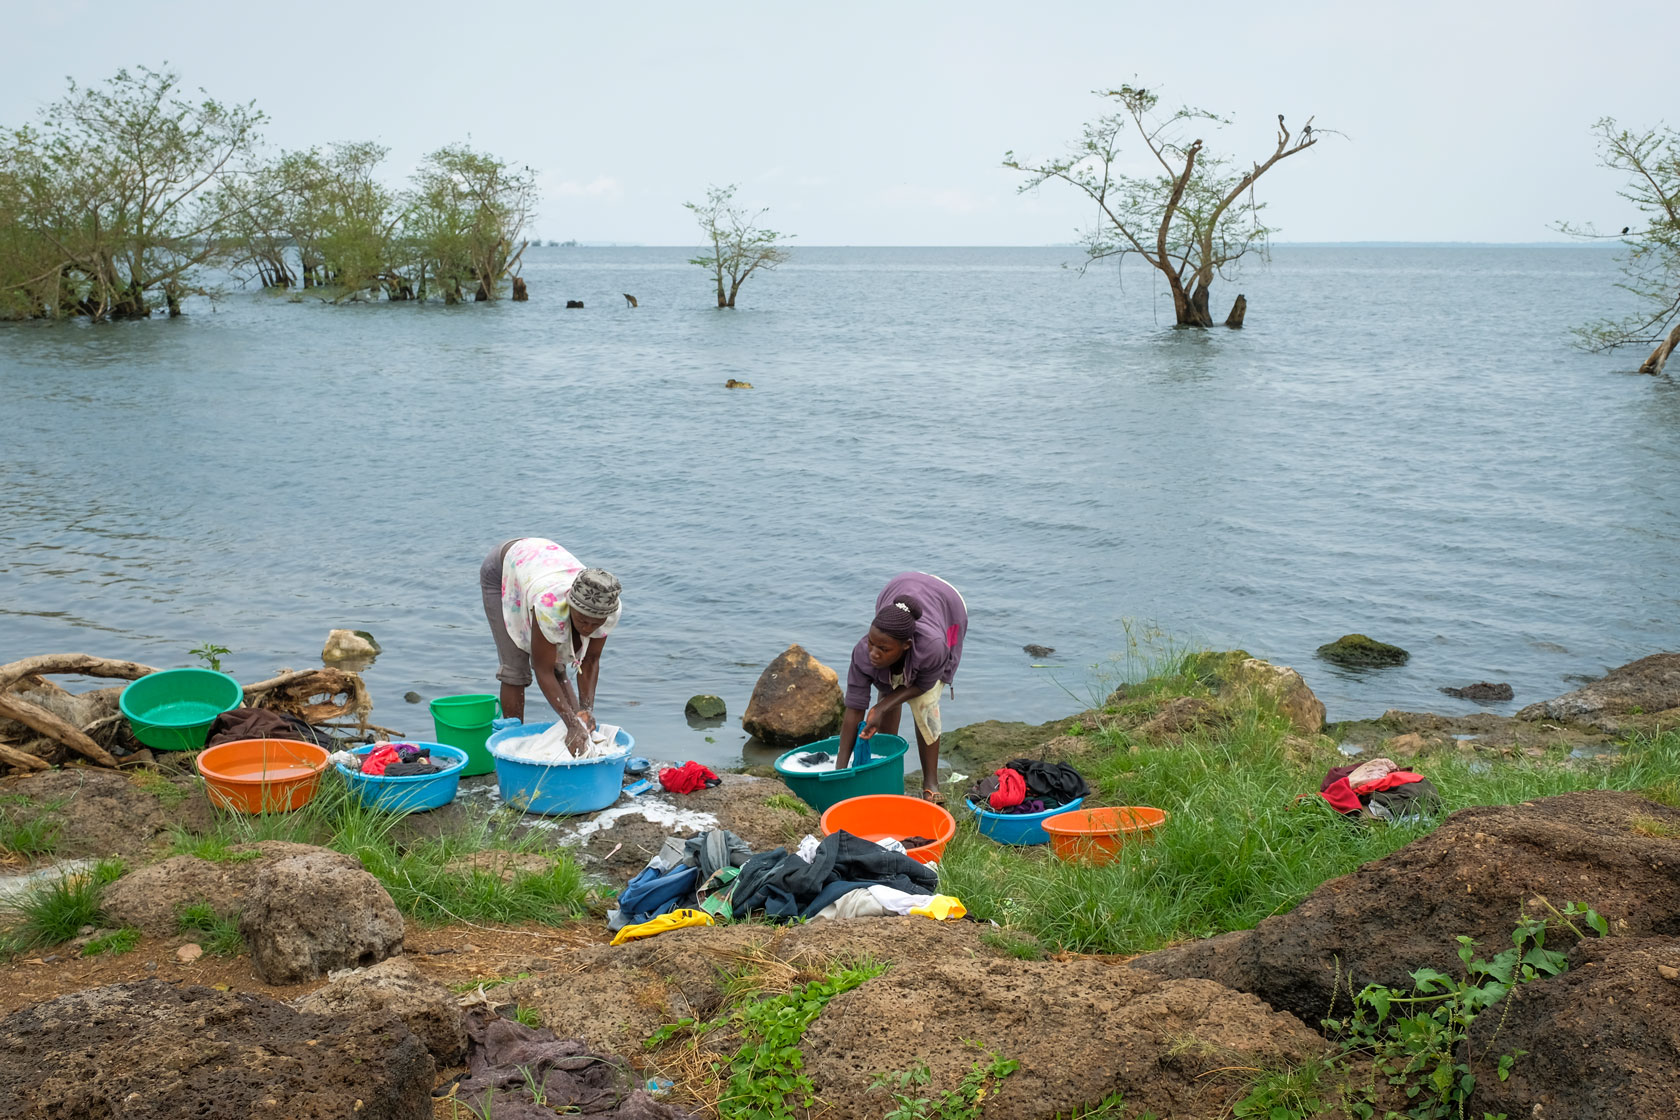 Two women washing laundry with their hands at Lake Victoria